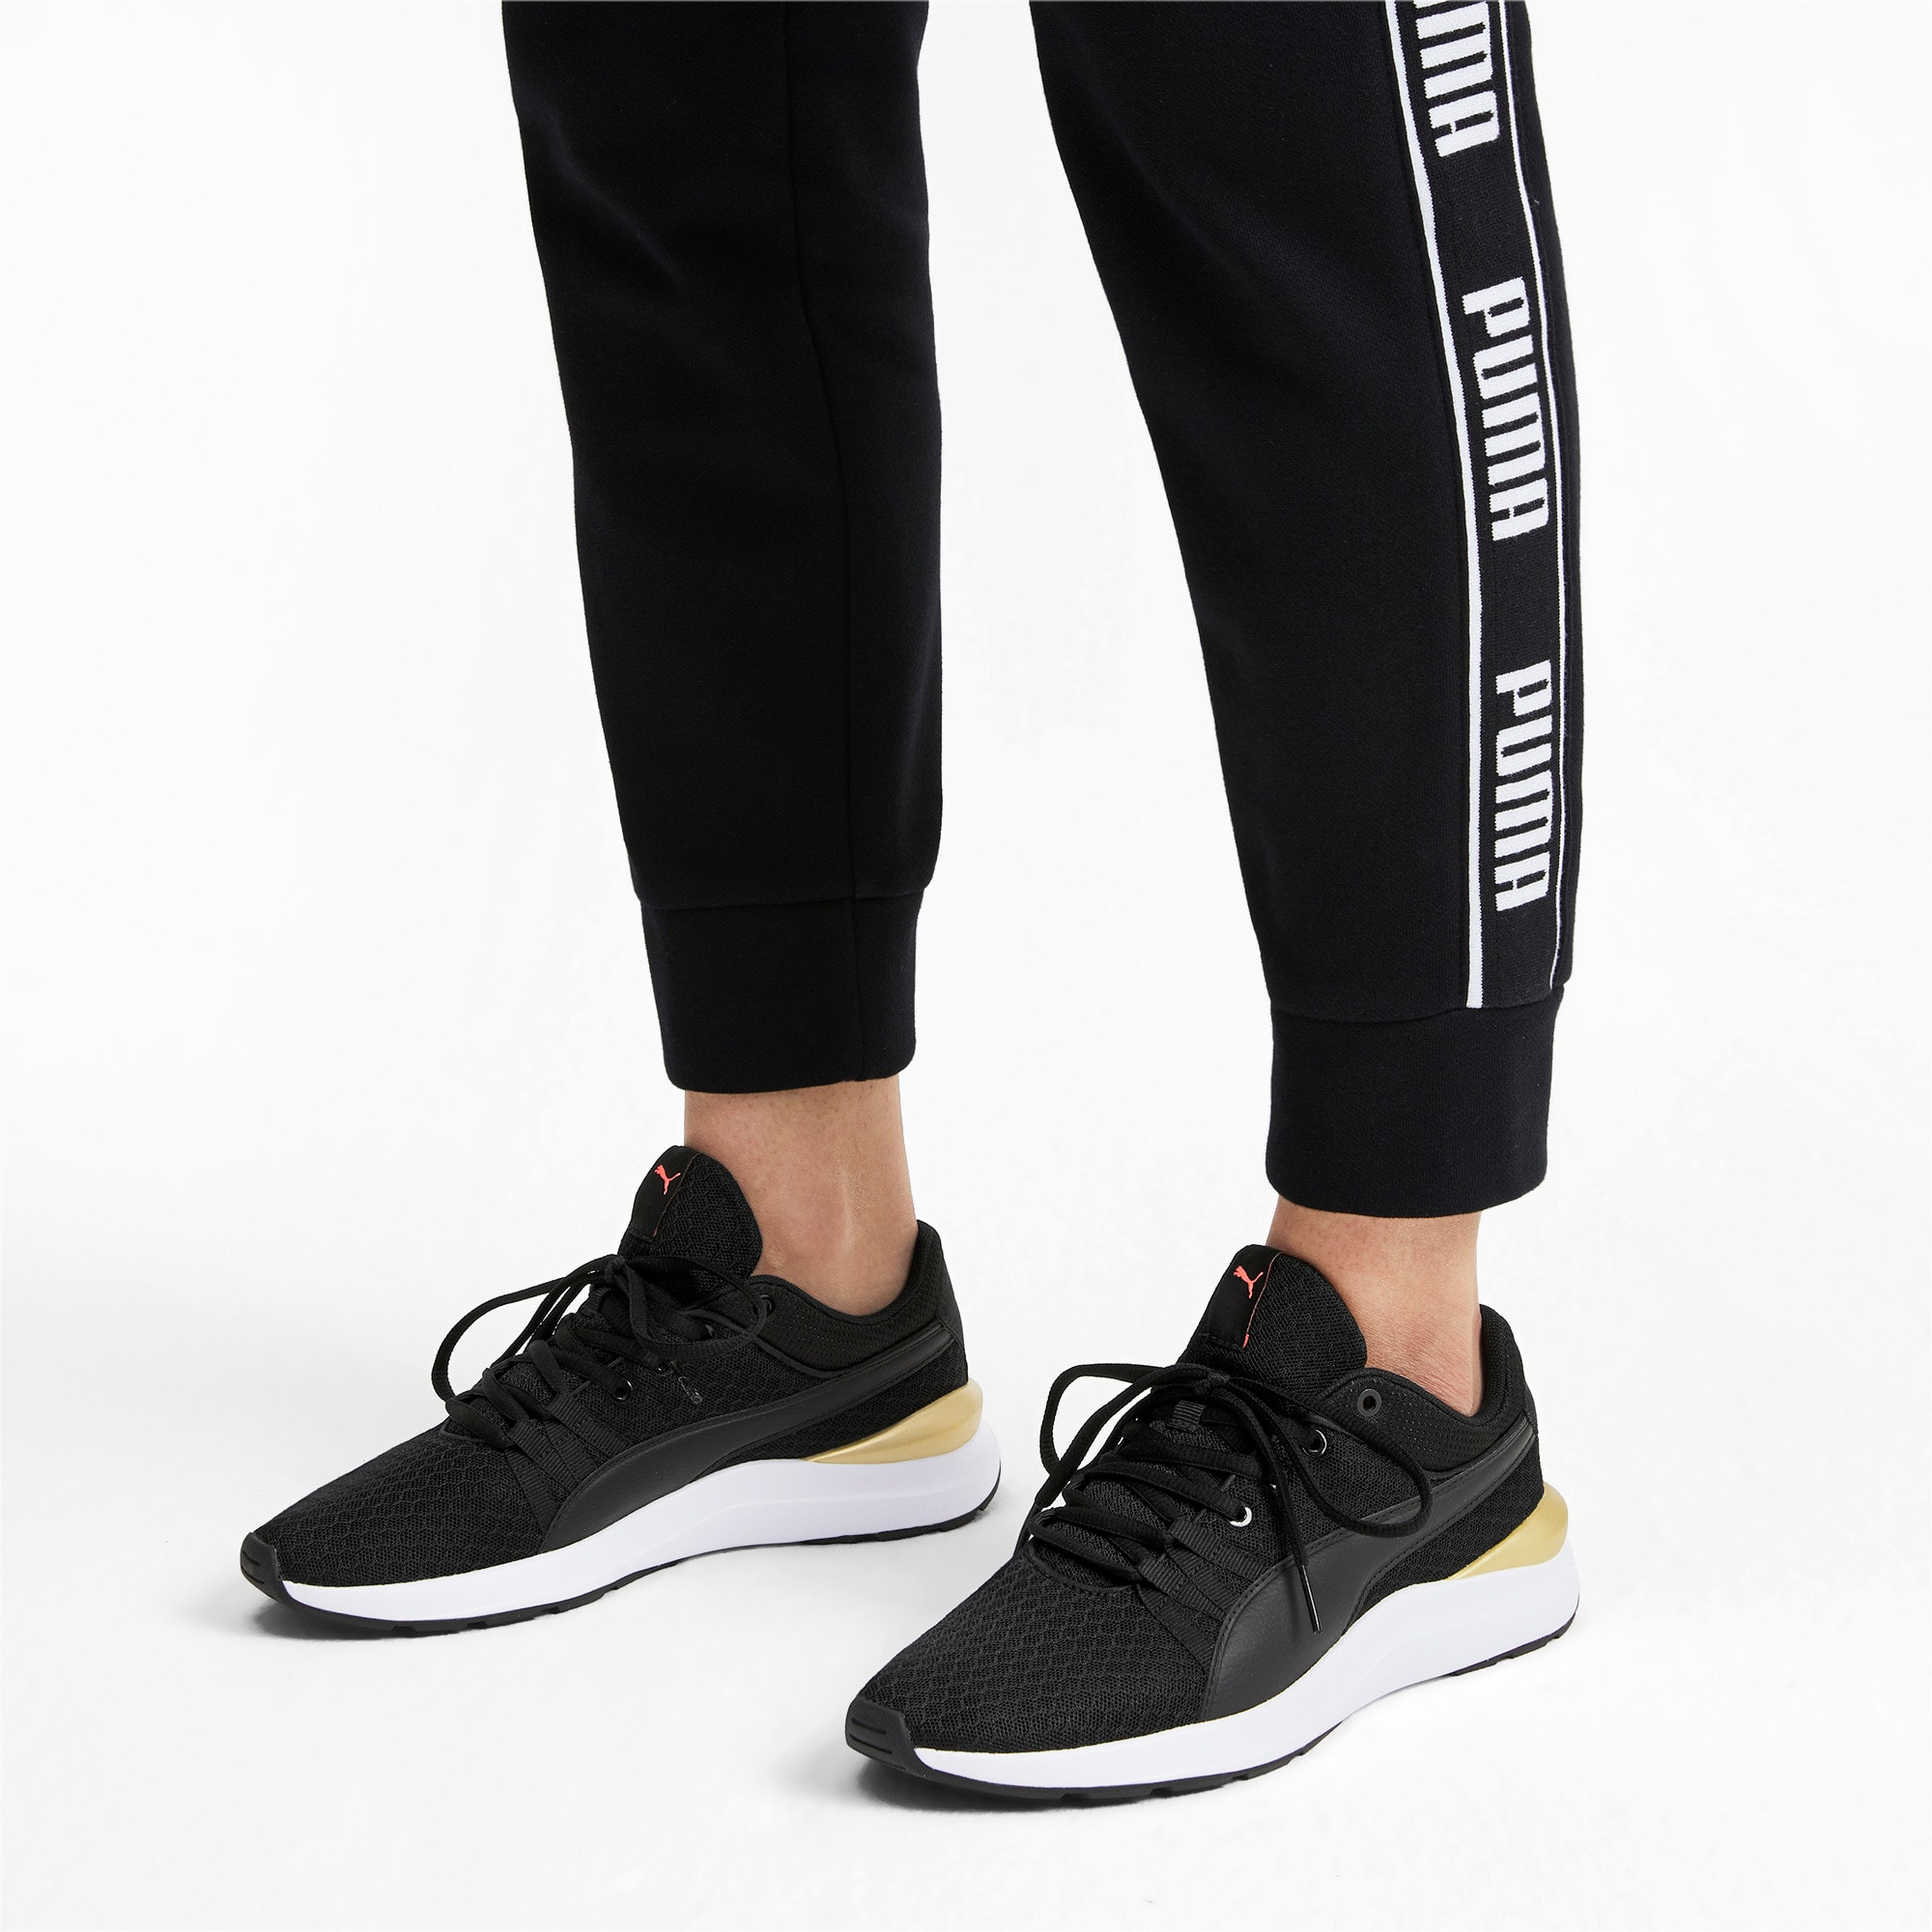 Thumbnail 2 of Adela Trainers, Puma Black-Puma Team Gold, medium